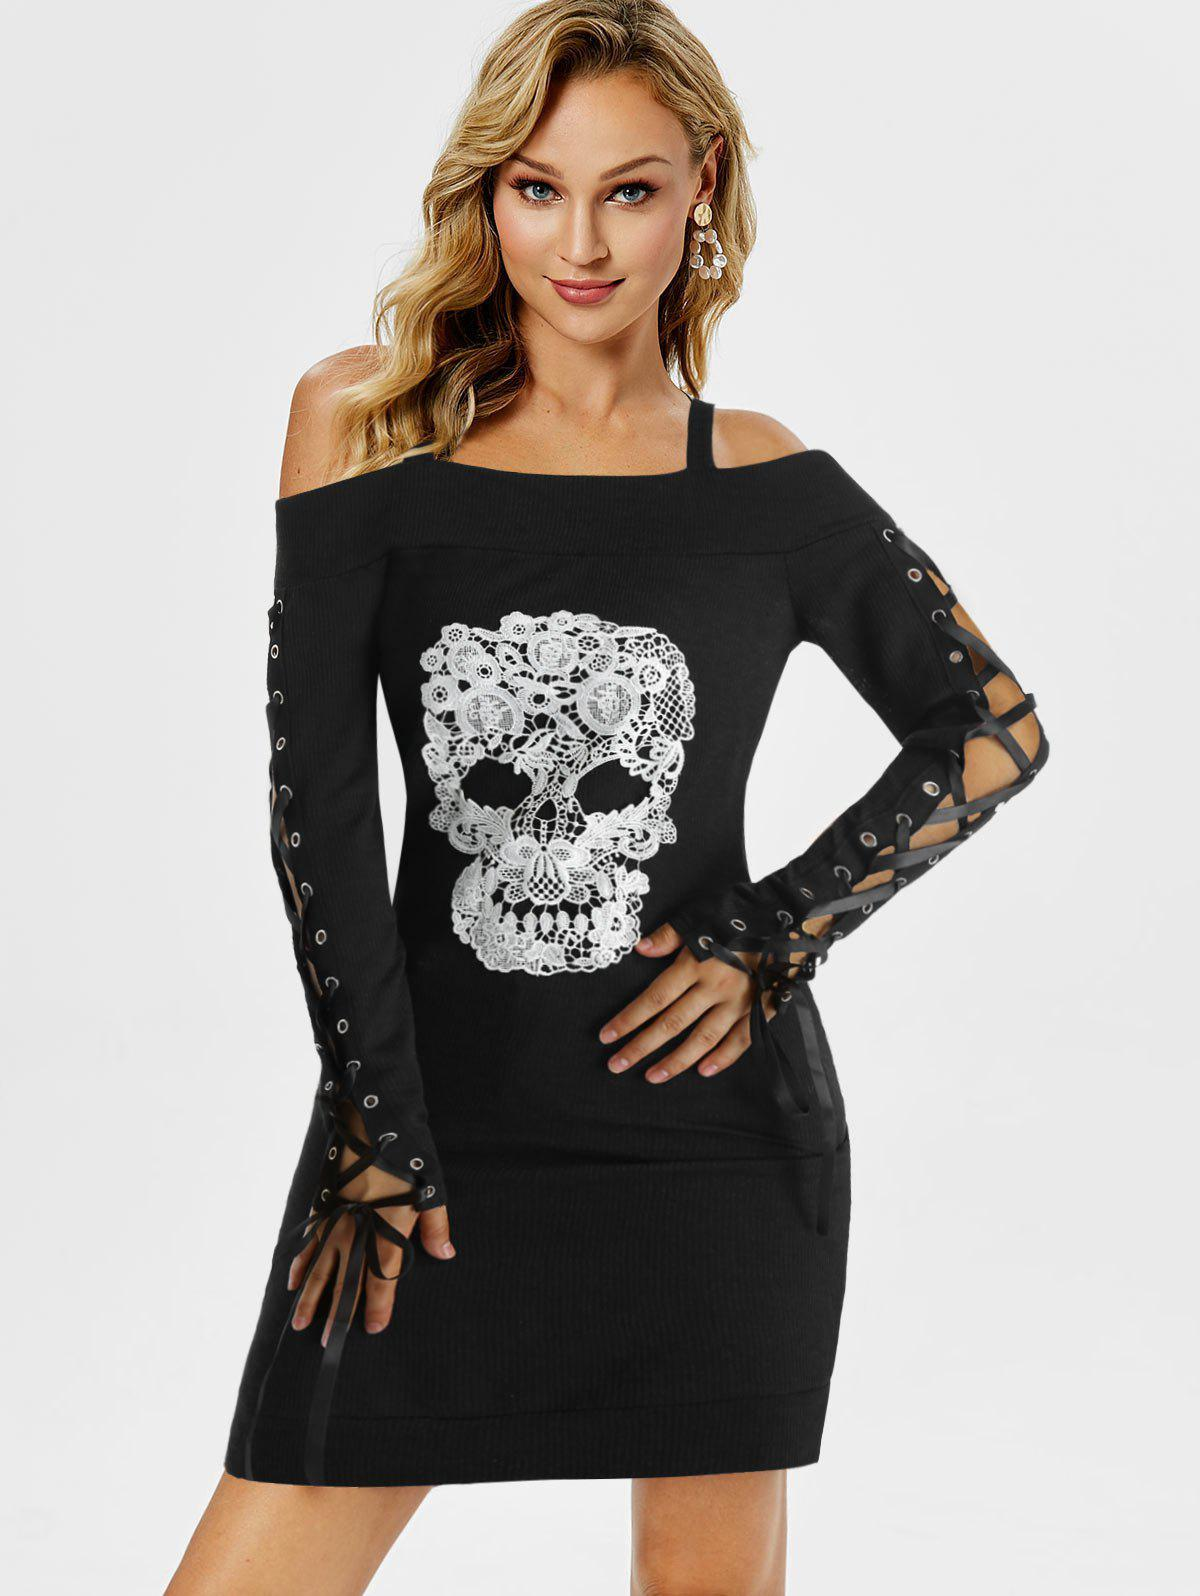 Gothic Skull Embroidery Lace Up Sleeve Dress - BLACK XL